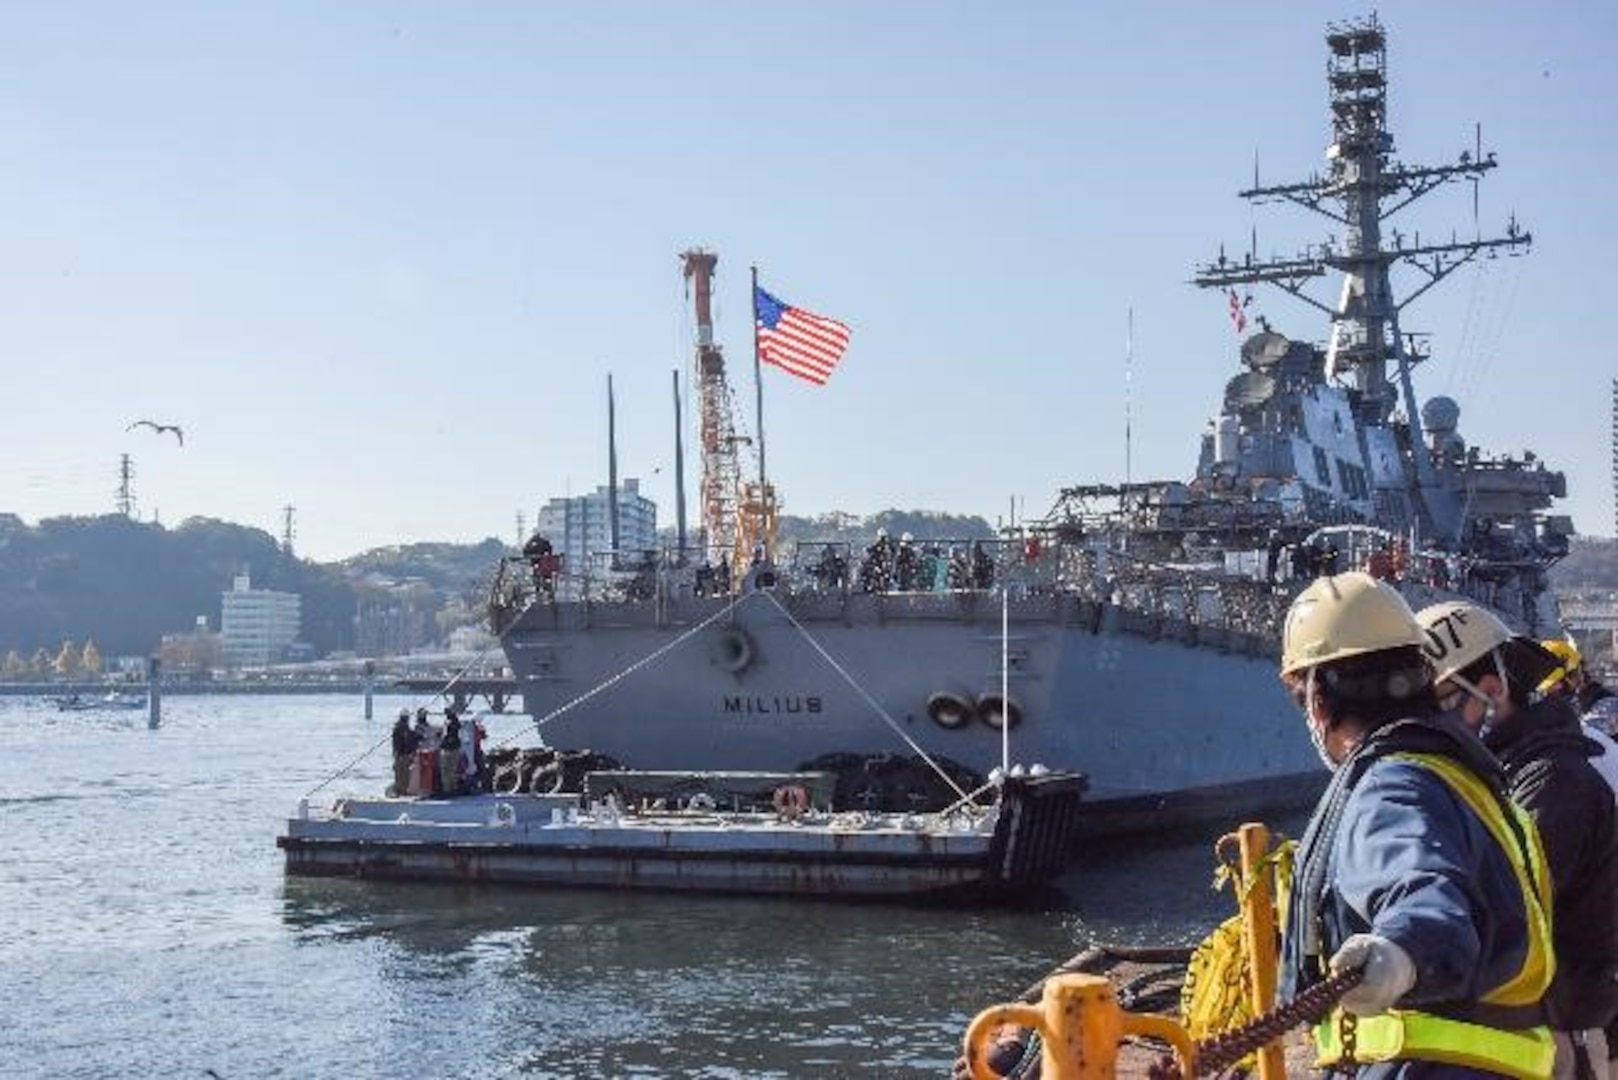 USS Milius (DDG 69) transits into Tokyo Bay to continue further repairs pier side, after Ship Repair Facility and Japan Regional Maintenance Center successfully undocks the ship from the dry dock.